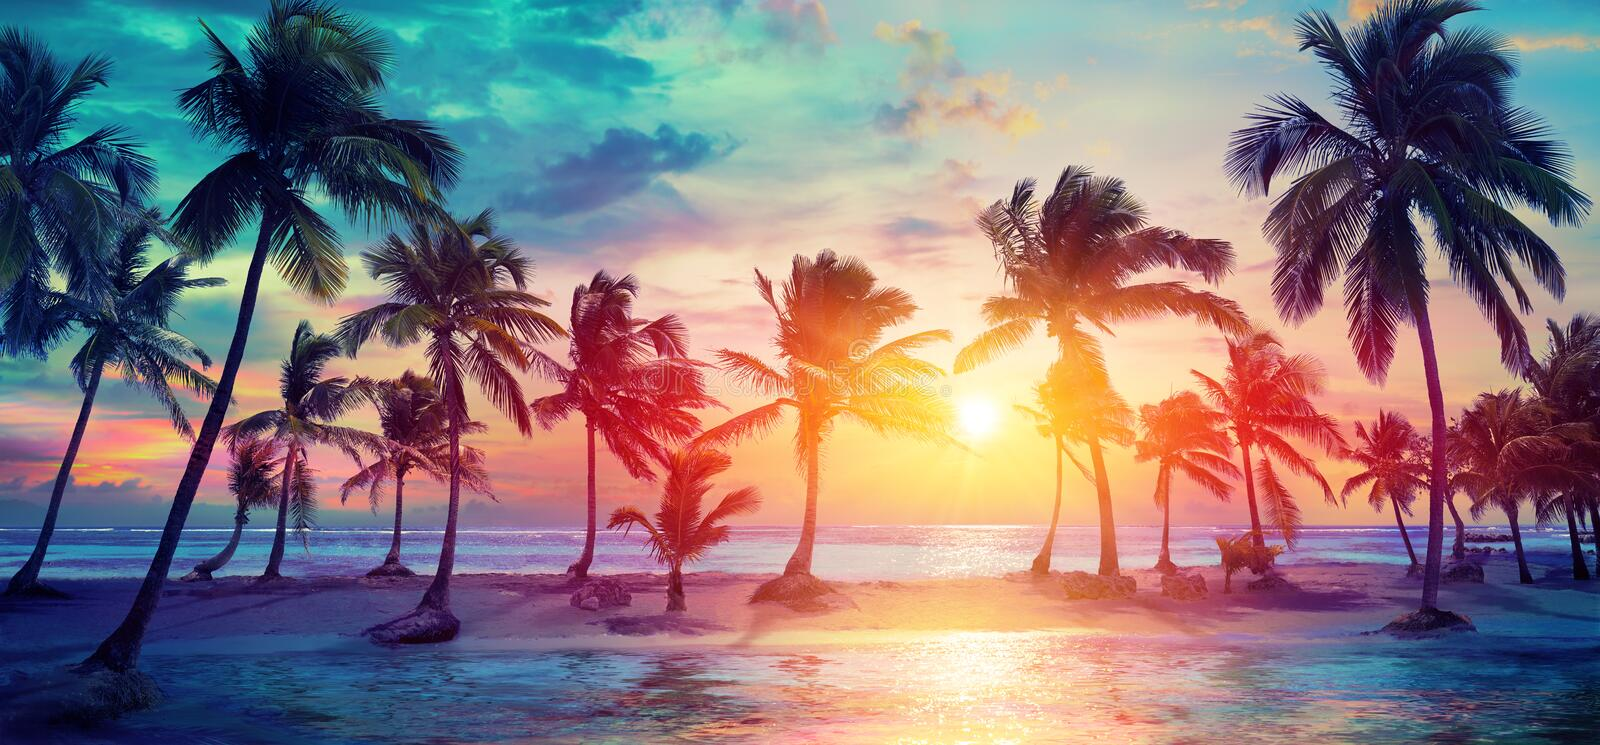 Palm Trees Silhouettes On Tropical Beach At Sunset stock photography